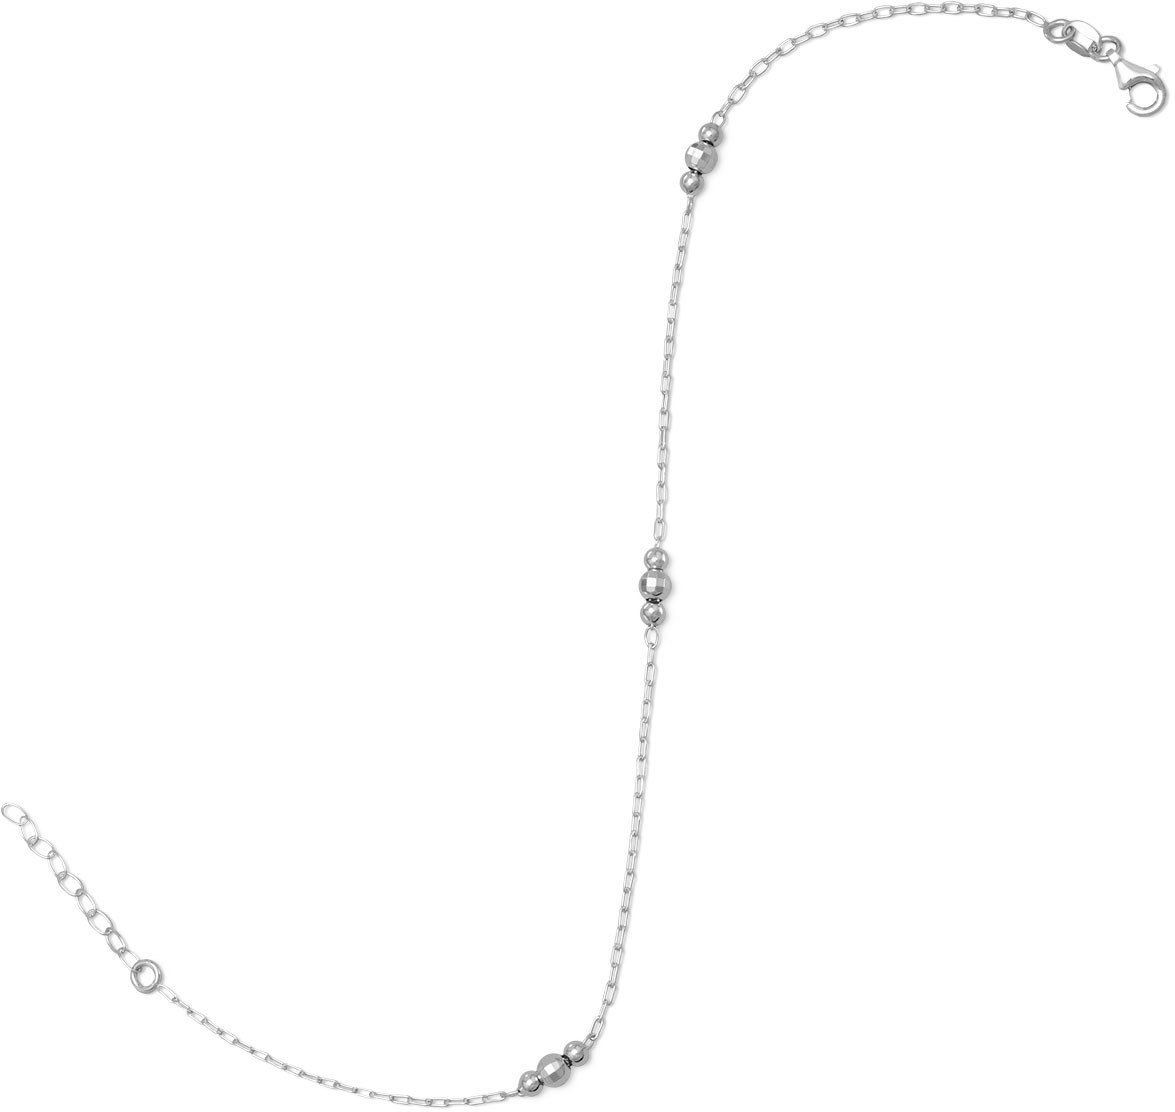 "11"" + 1"" Rhodium Plated Anklet with Beads 925 Sterling Silver"